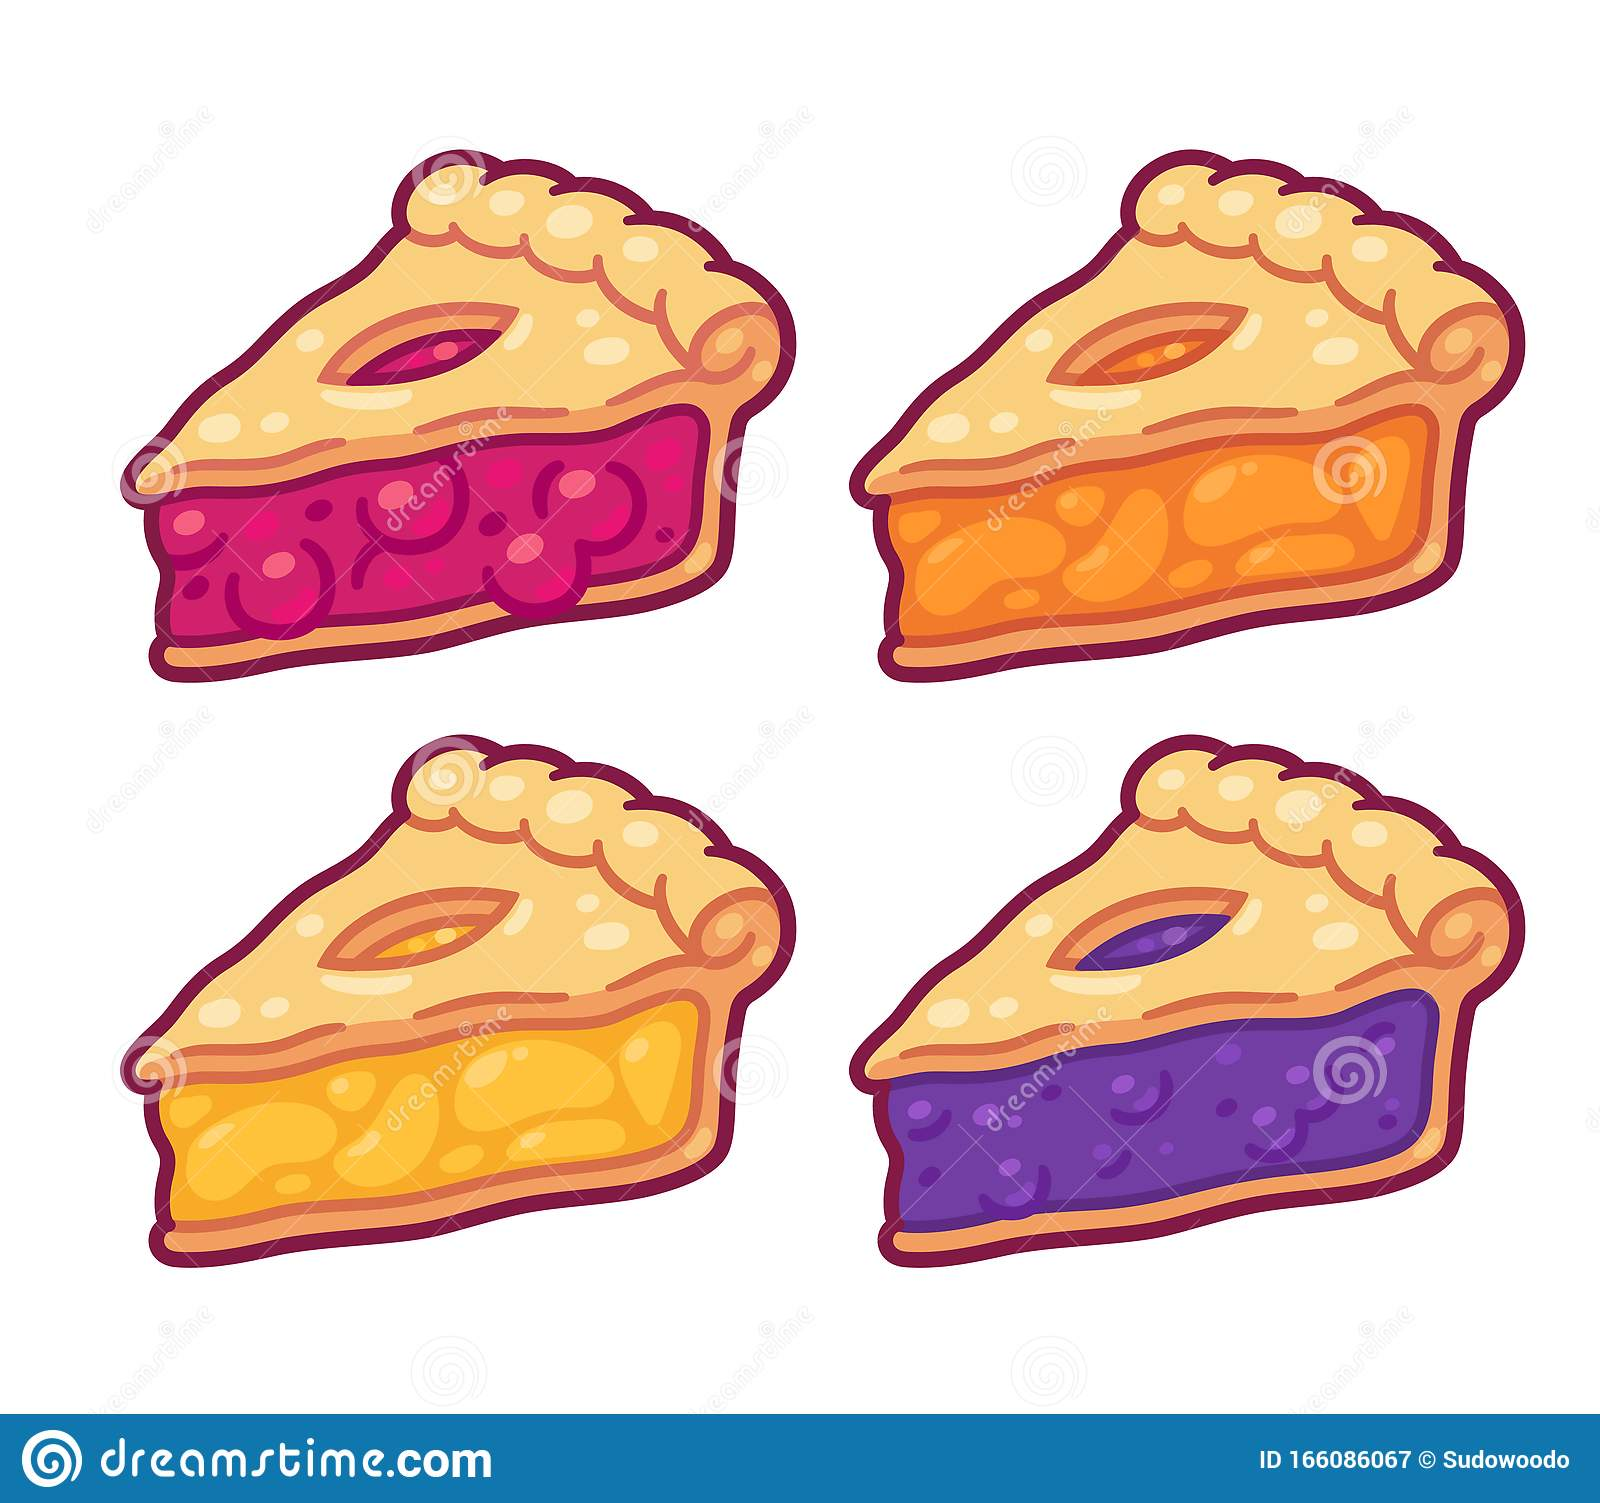 Cartoon Pie Slices Set Stock Vector Illustration Of Slices 166086067